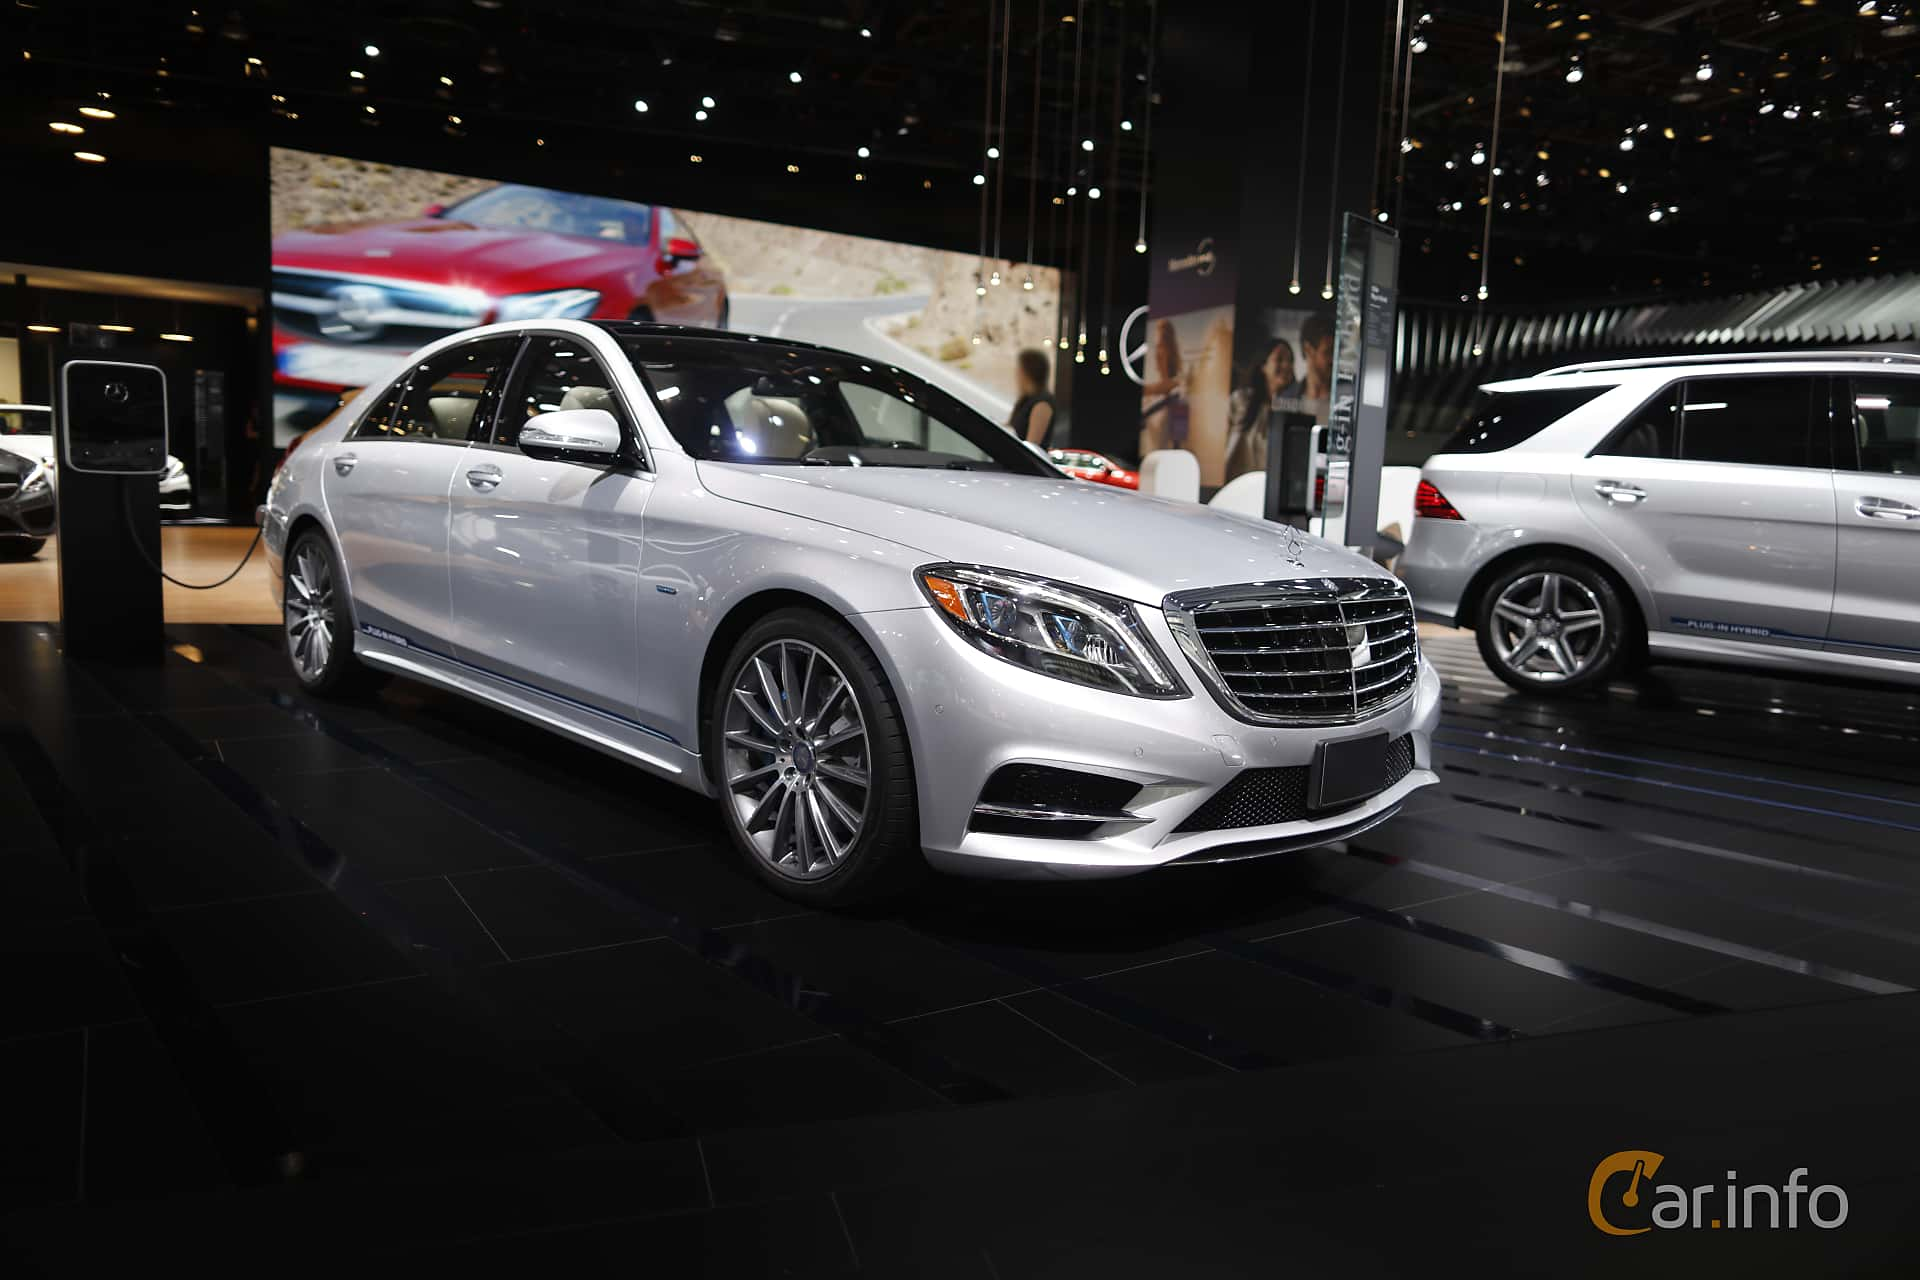 Front/Side  of Mercedes-Benz S 500 e L 3.0 V6 7G-Tronic Plus, 442ps, 2017 at North American International Auto Show 2017